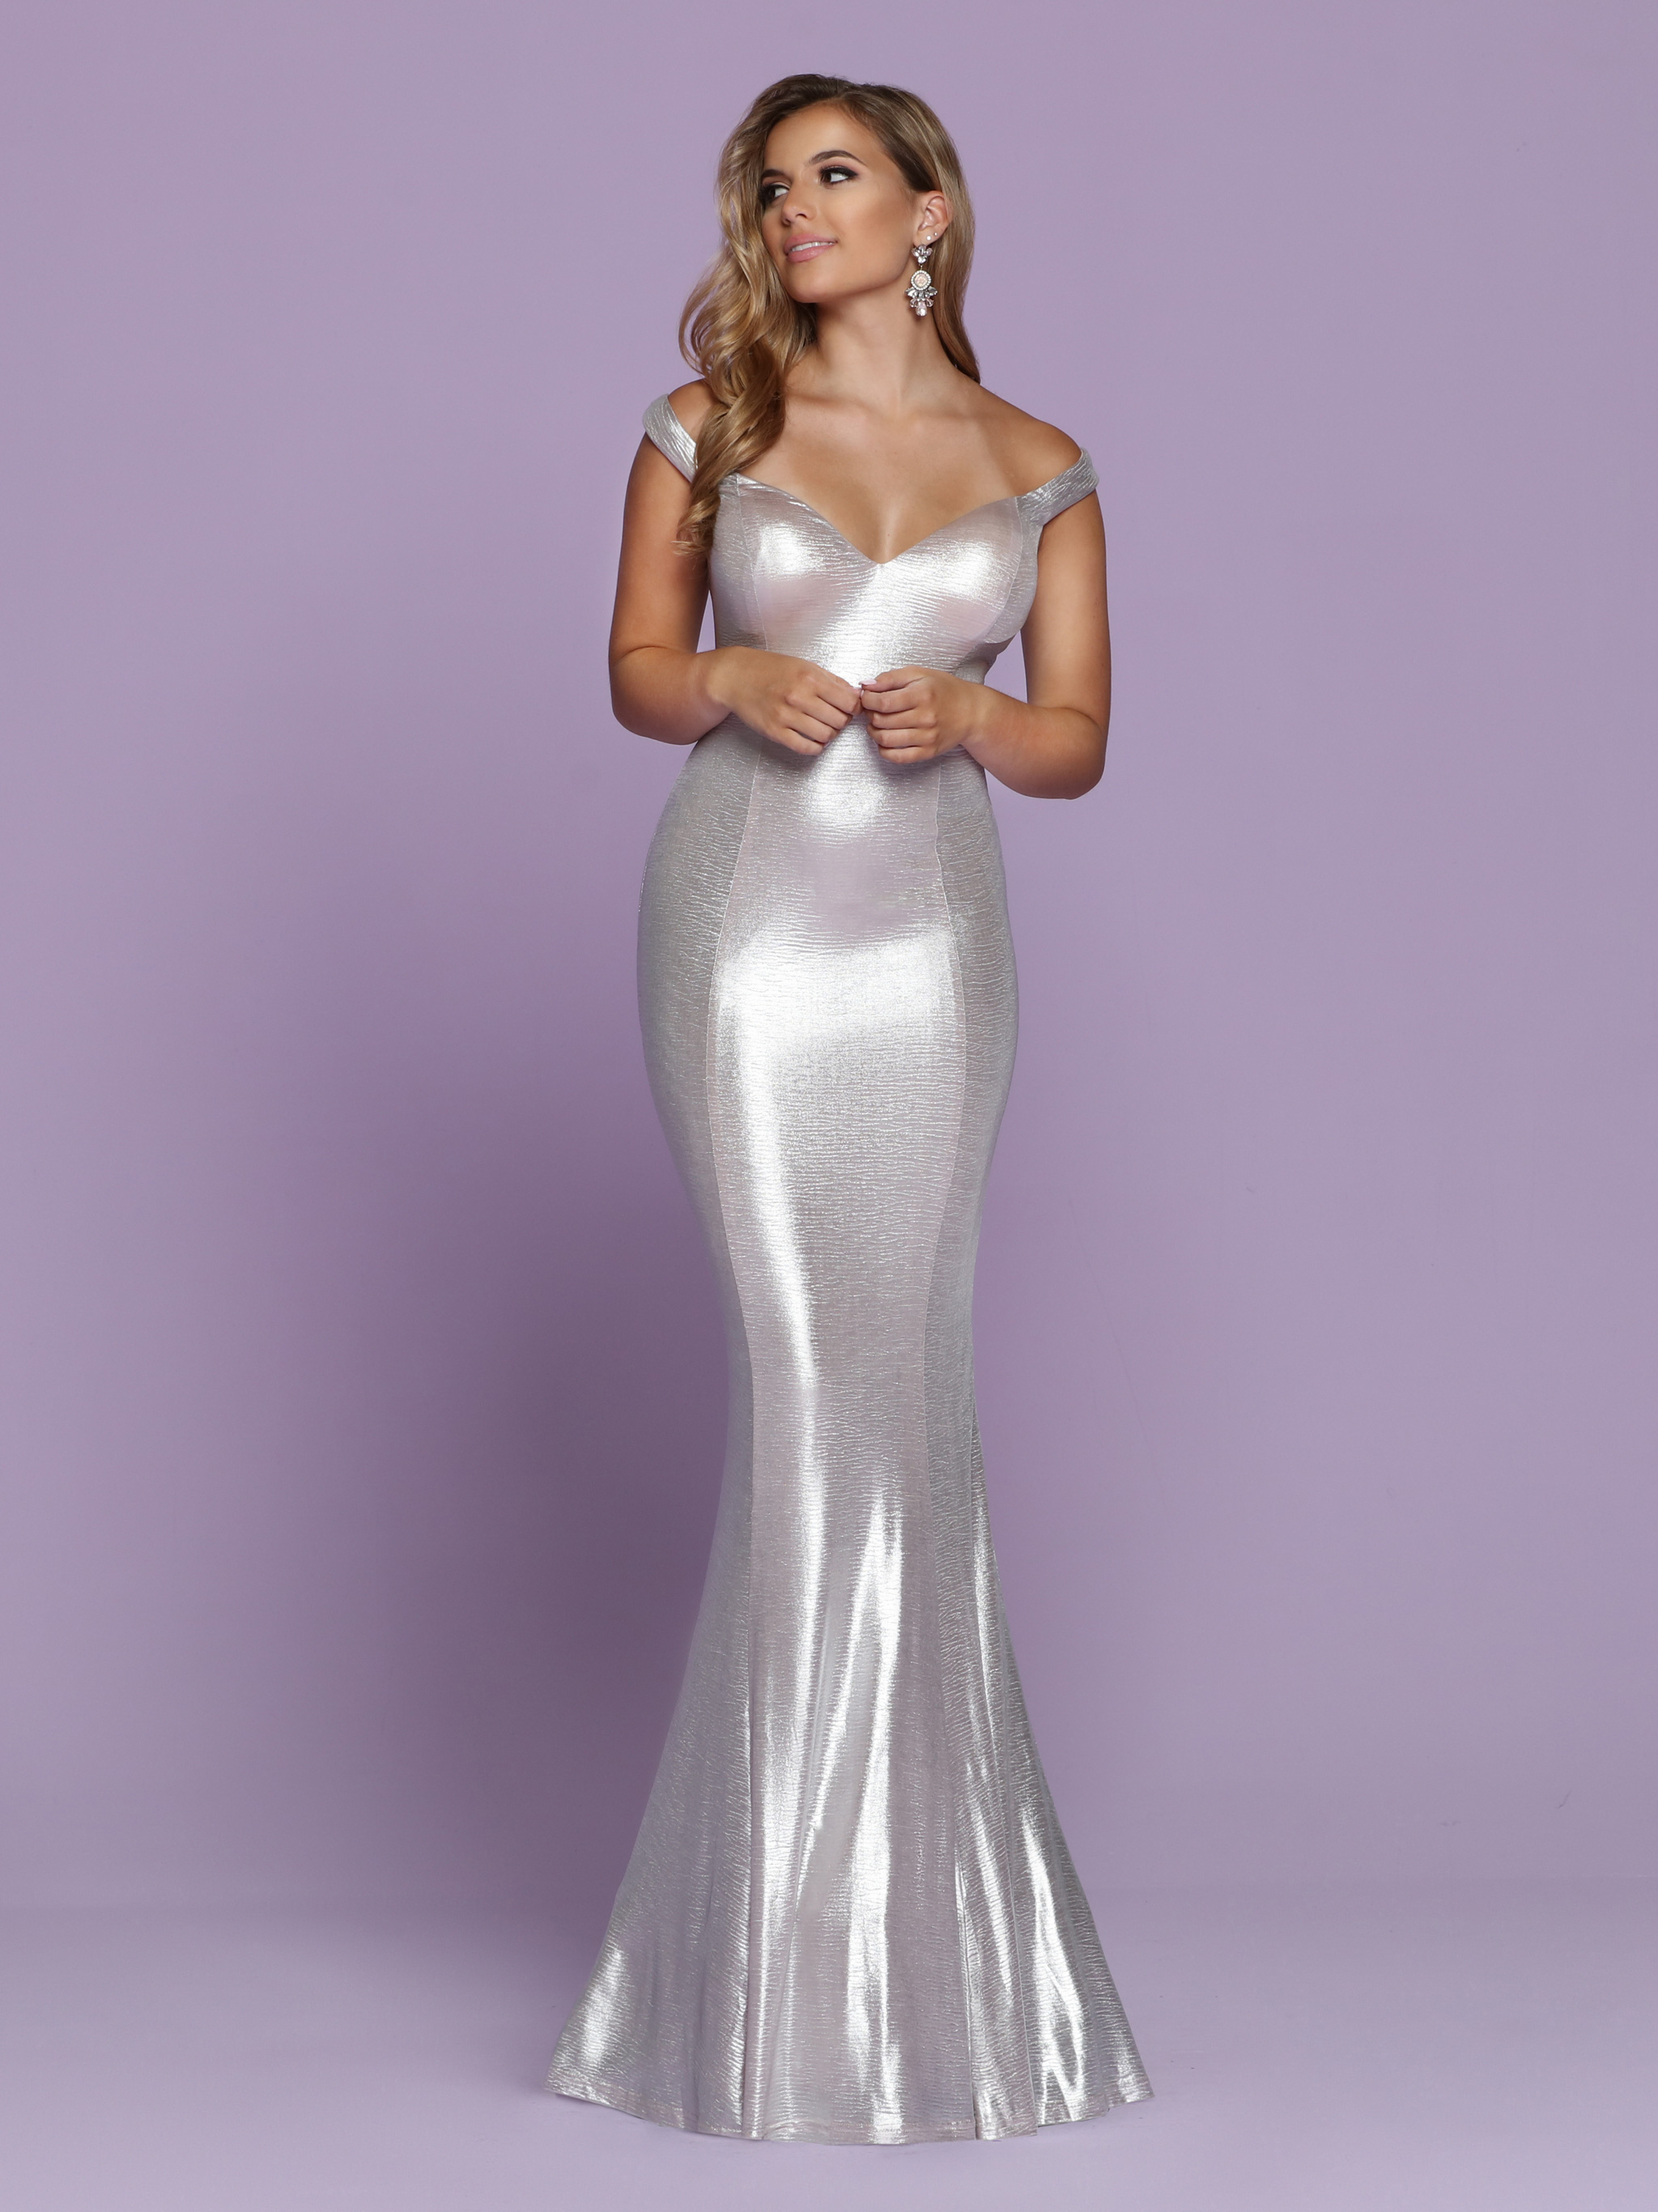 2020 Prom Dress Trends Metallic Gowns – Sparkle Prom